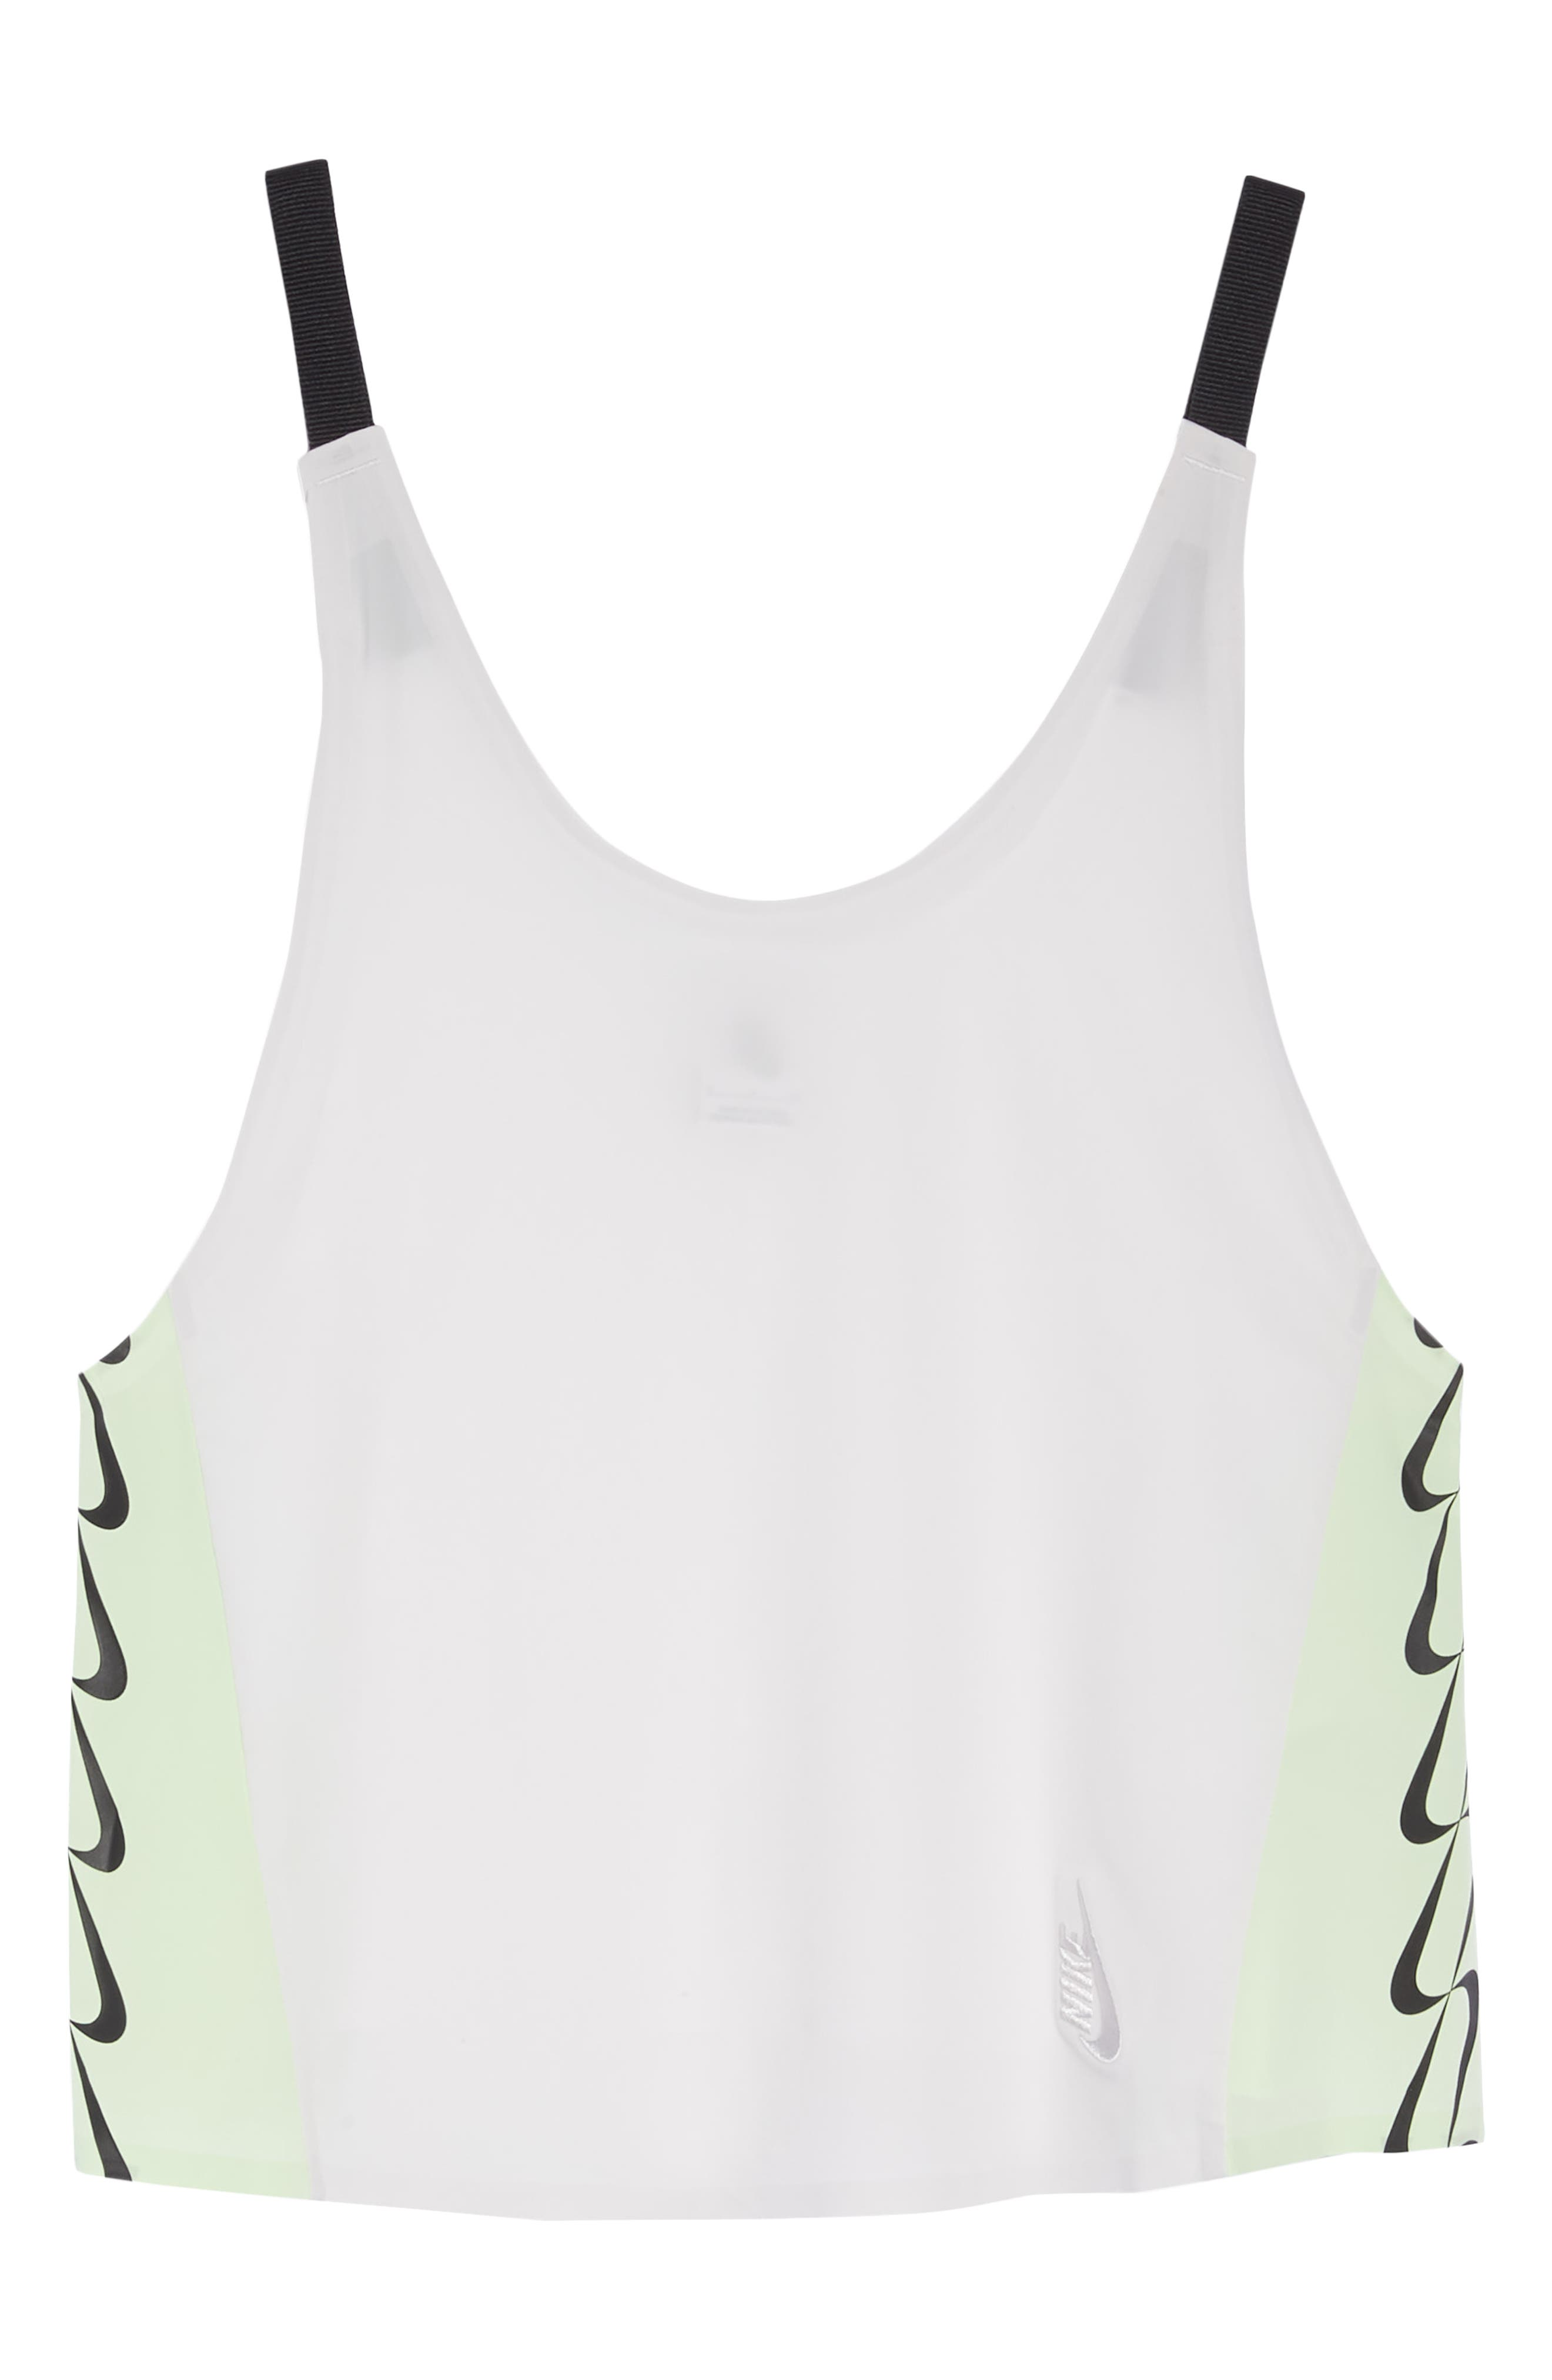 NRG Women's Colorblock Tank,                             Alternate thumbnail 7, color,                             Vast Grey/ White/ Vapor Green